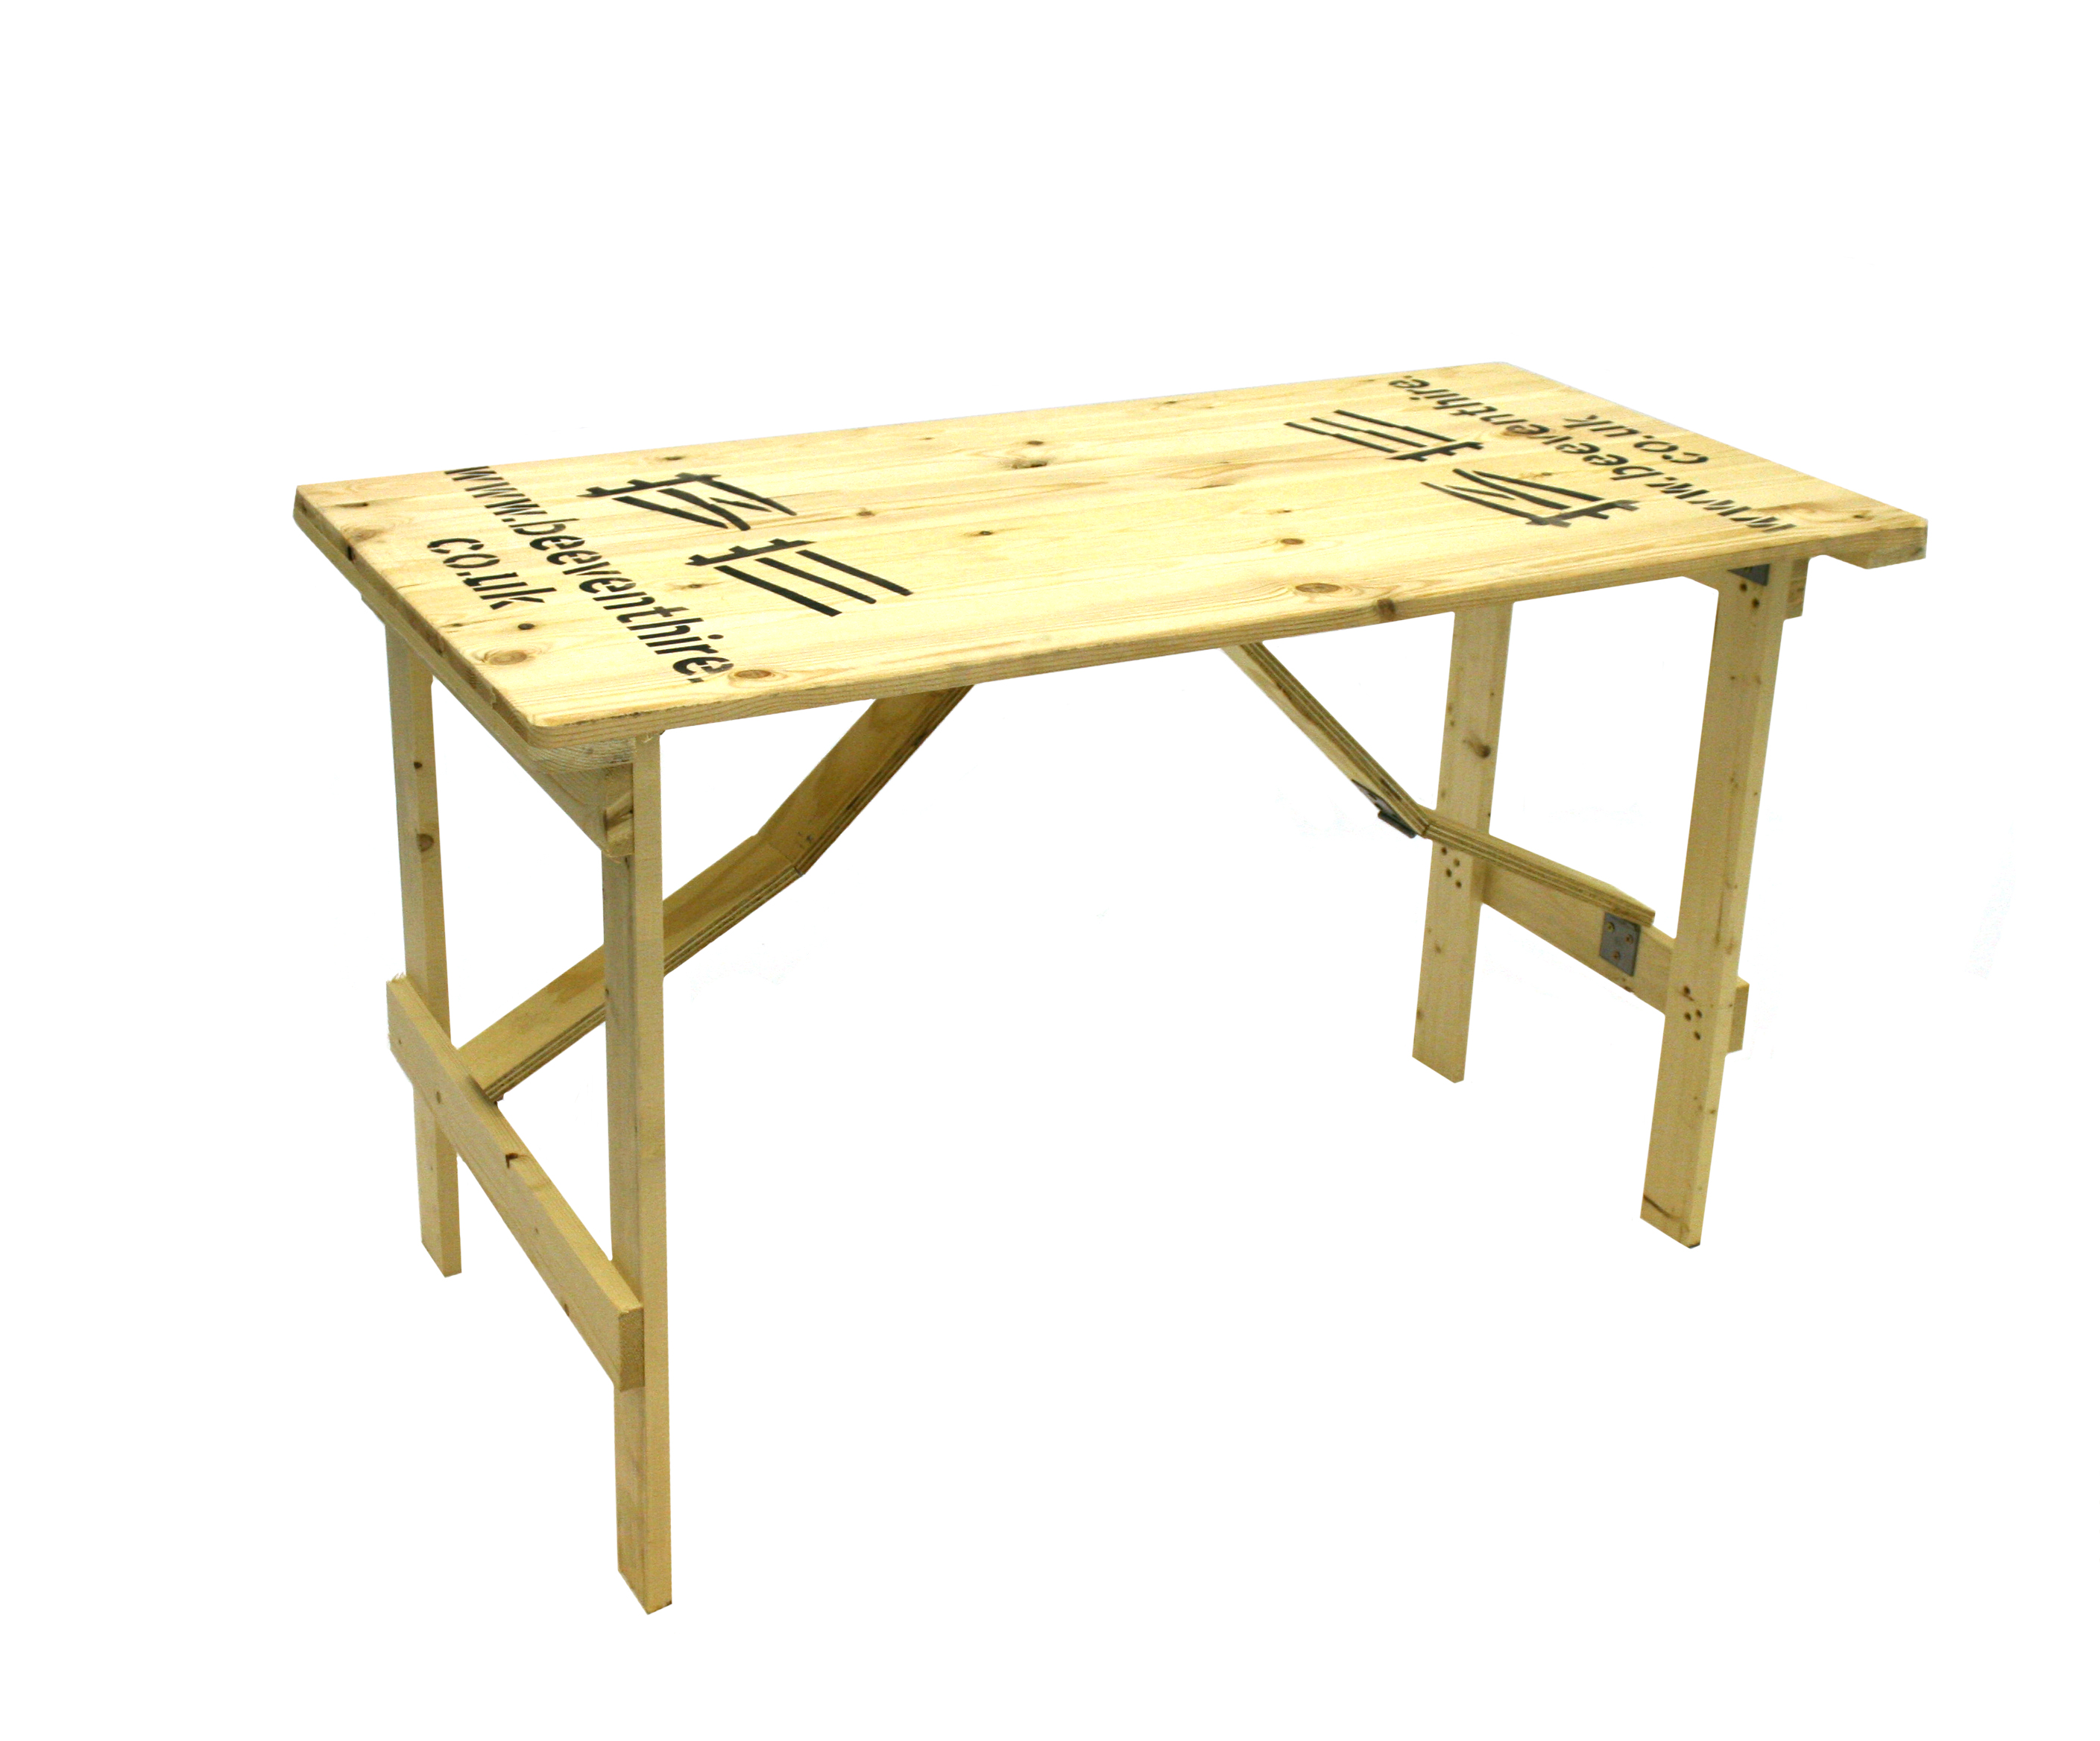 4′ x 26 trestle table